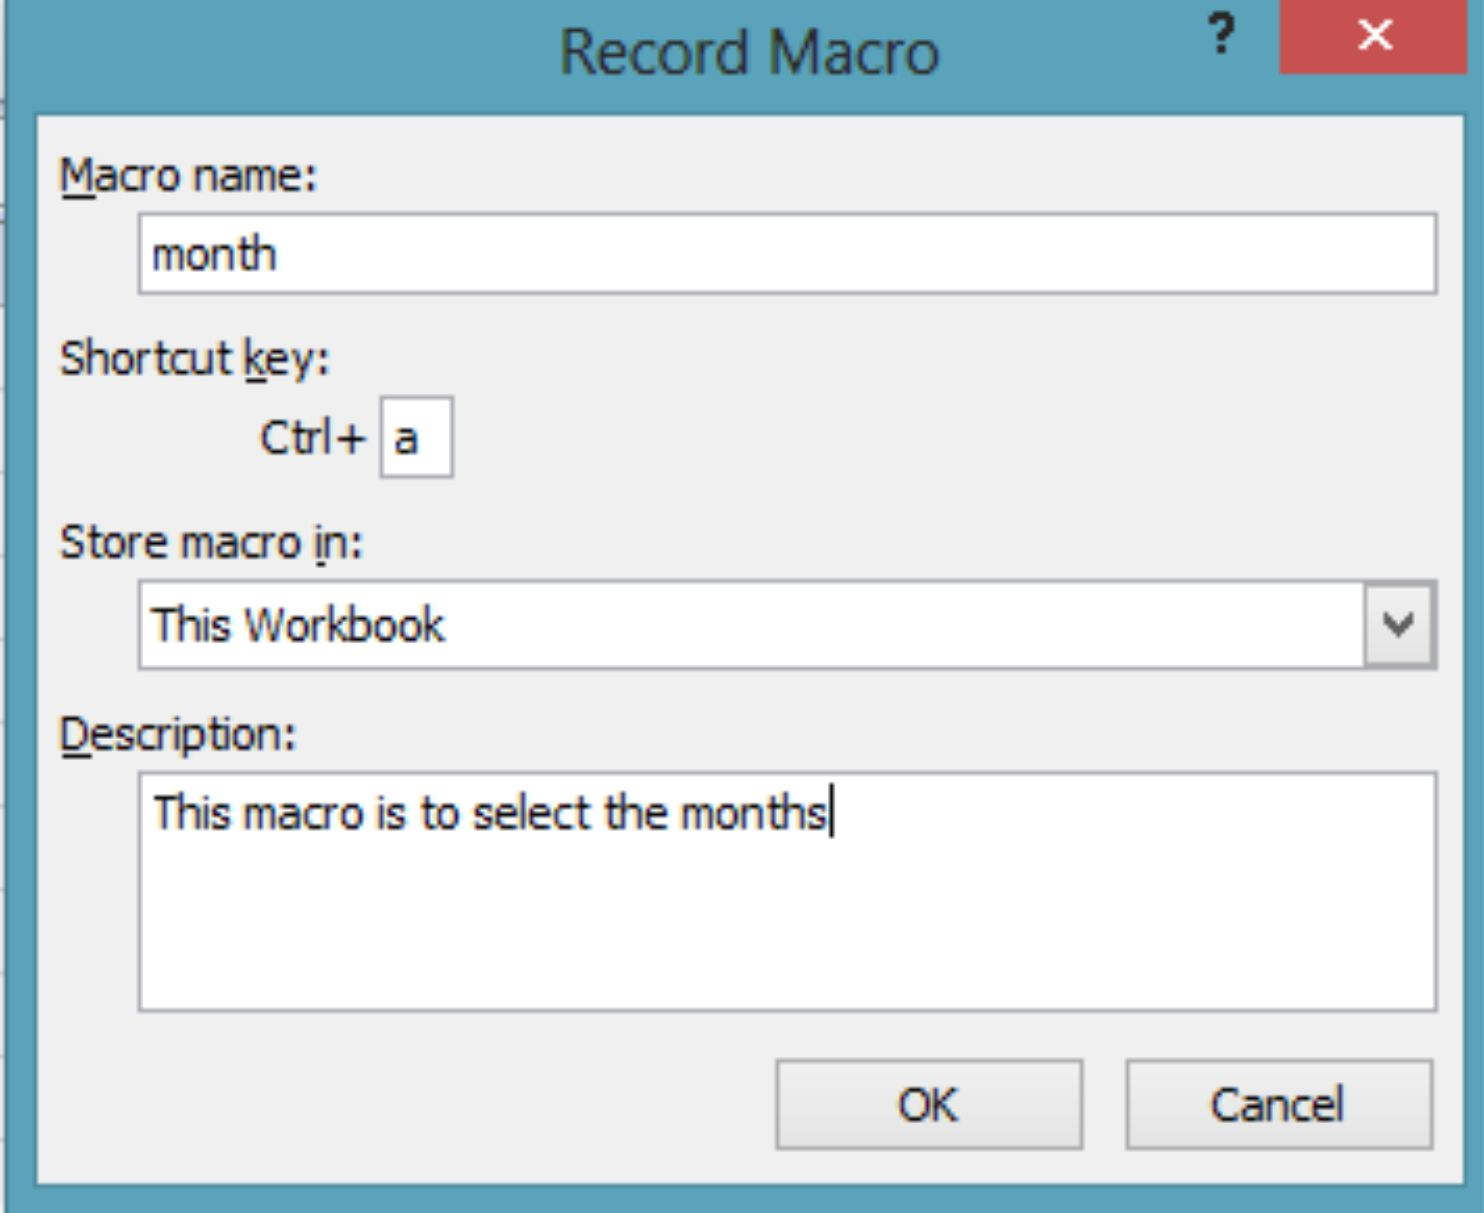 How To Record A Macro In Excel